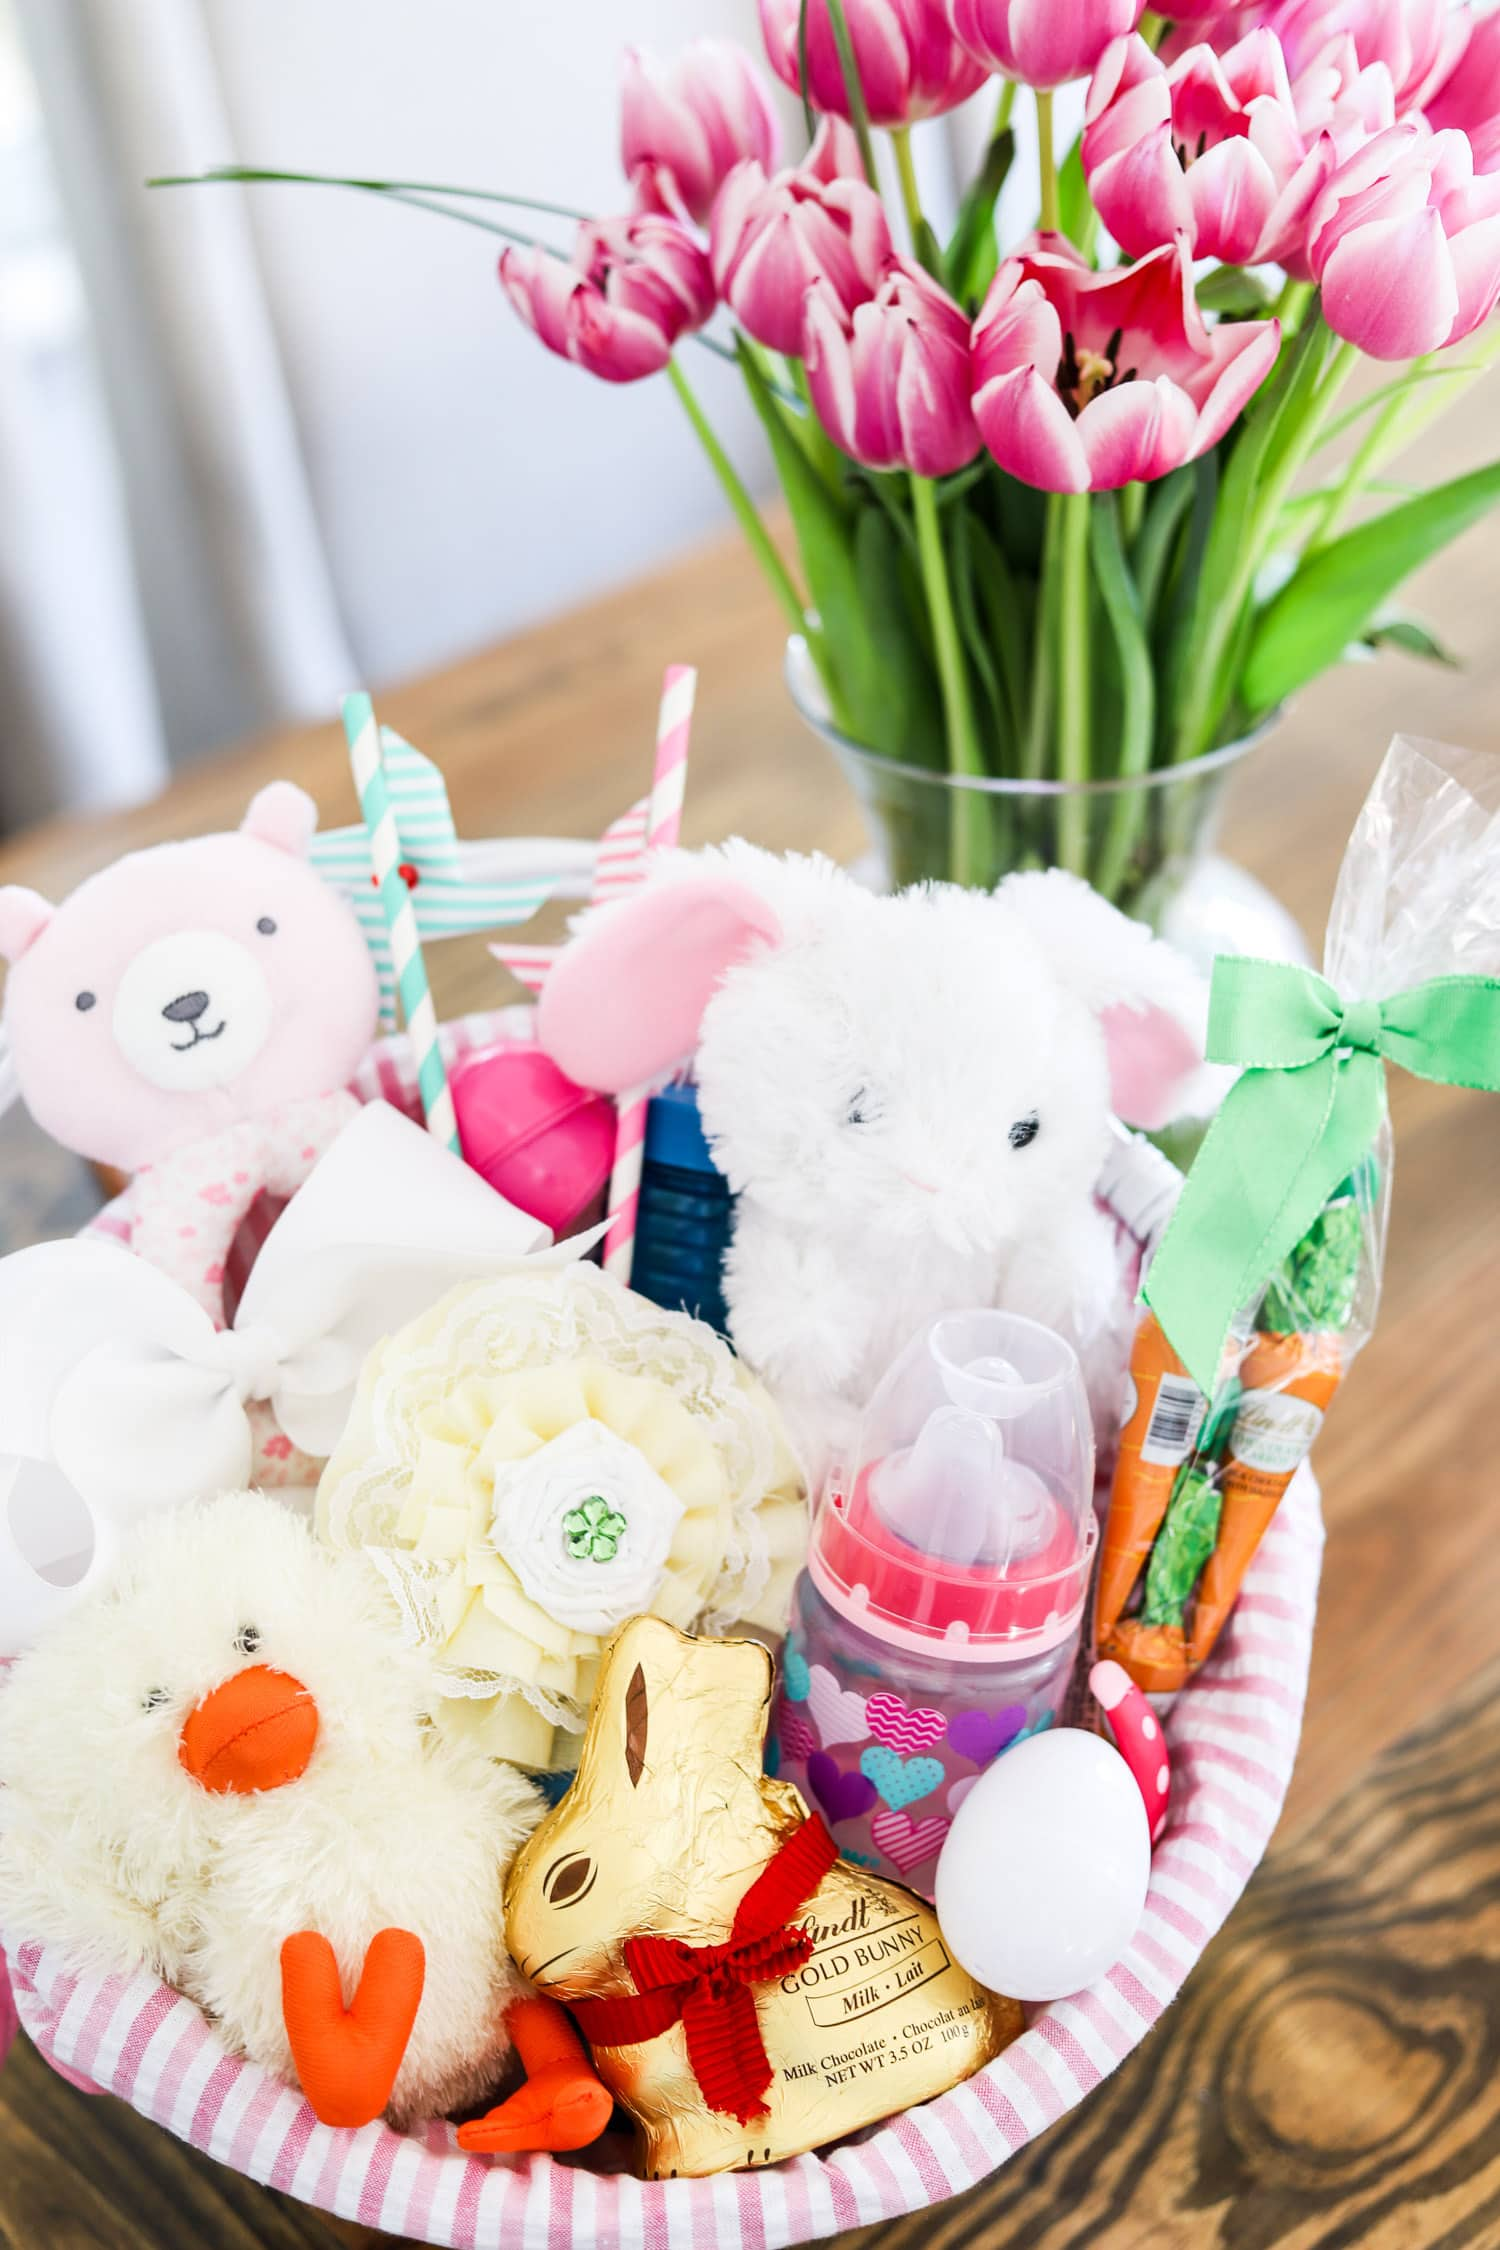 Cute easter basket ideas party favors ashley brooke nicholas cute easter party ideas lindt gold bunny easter negle